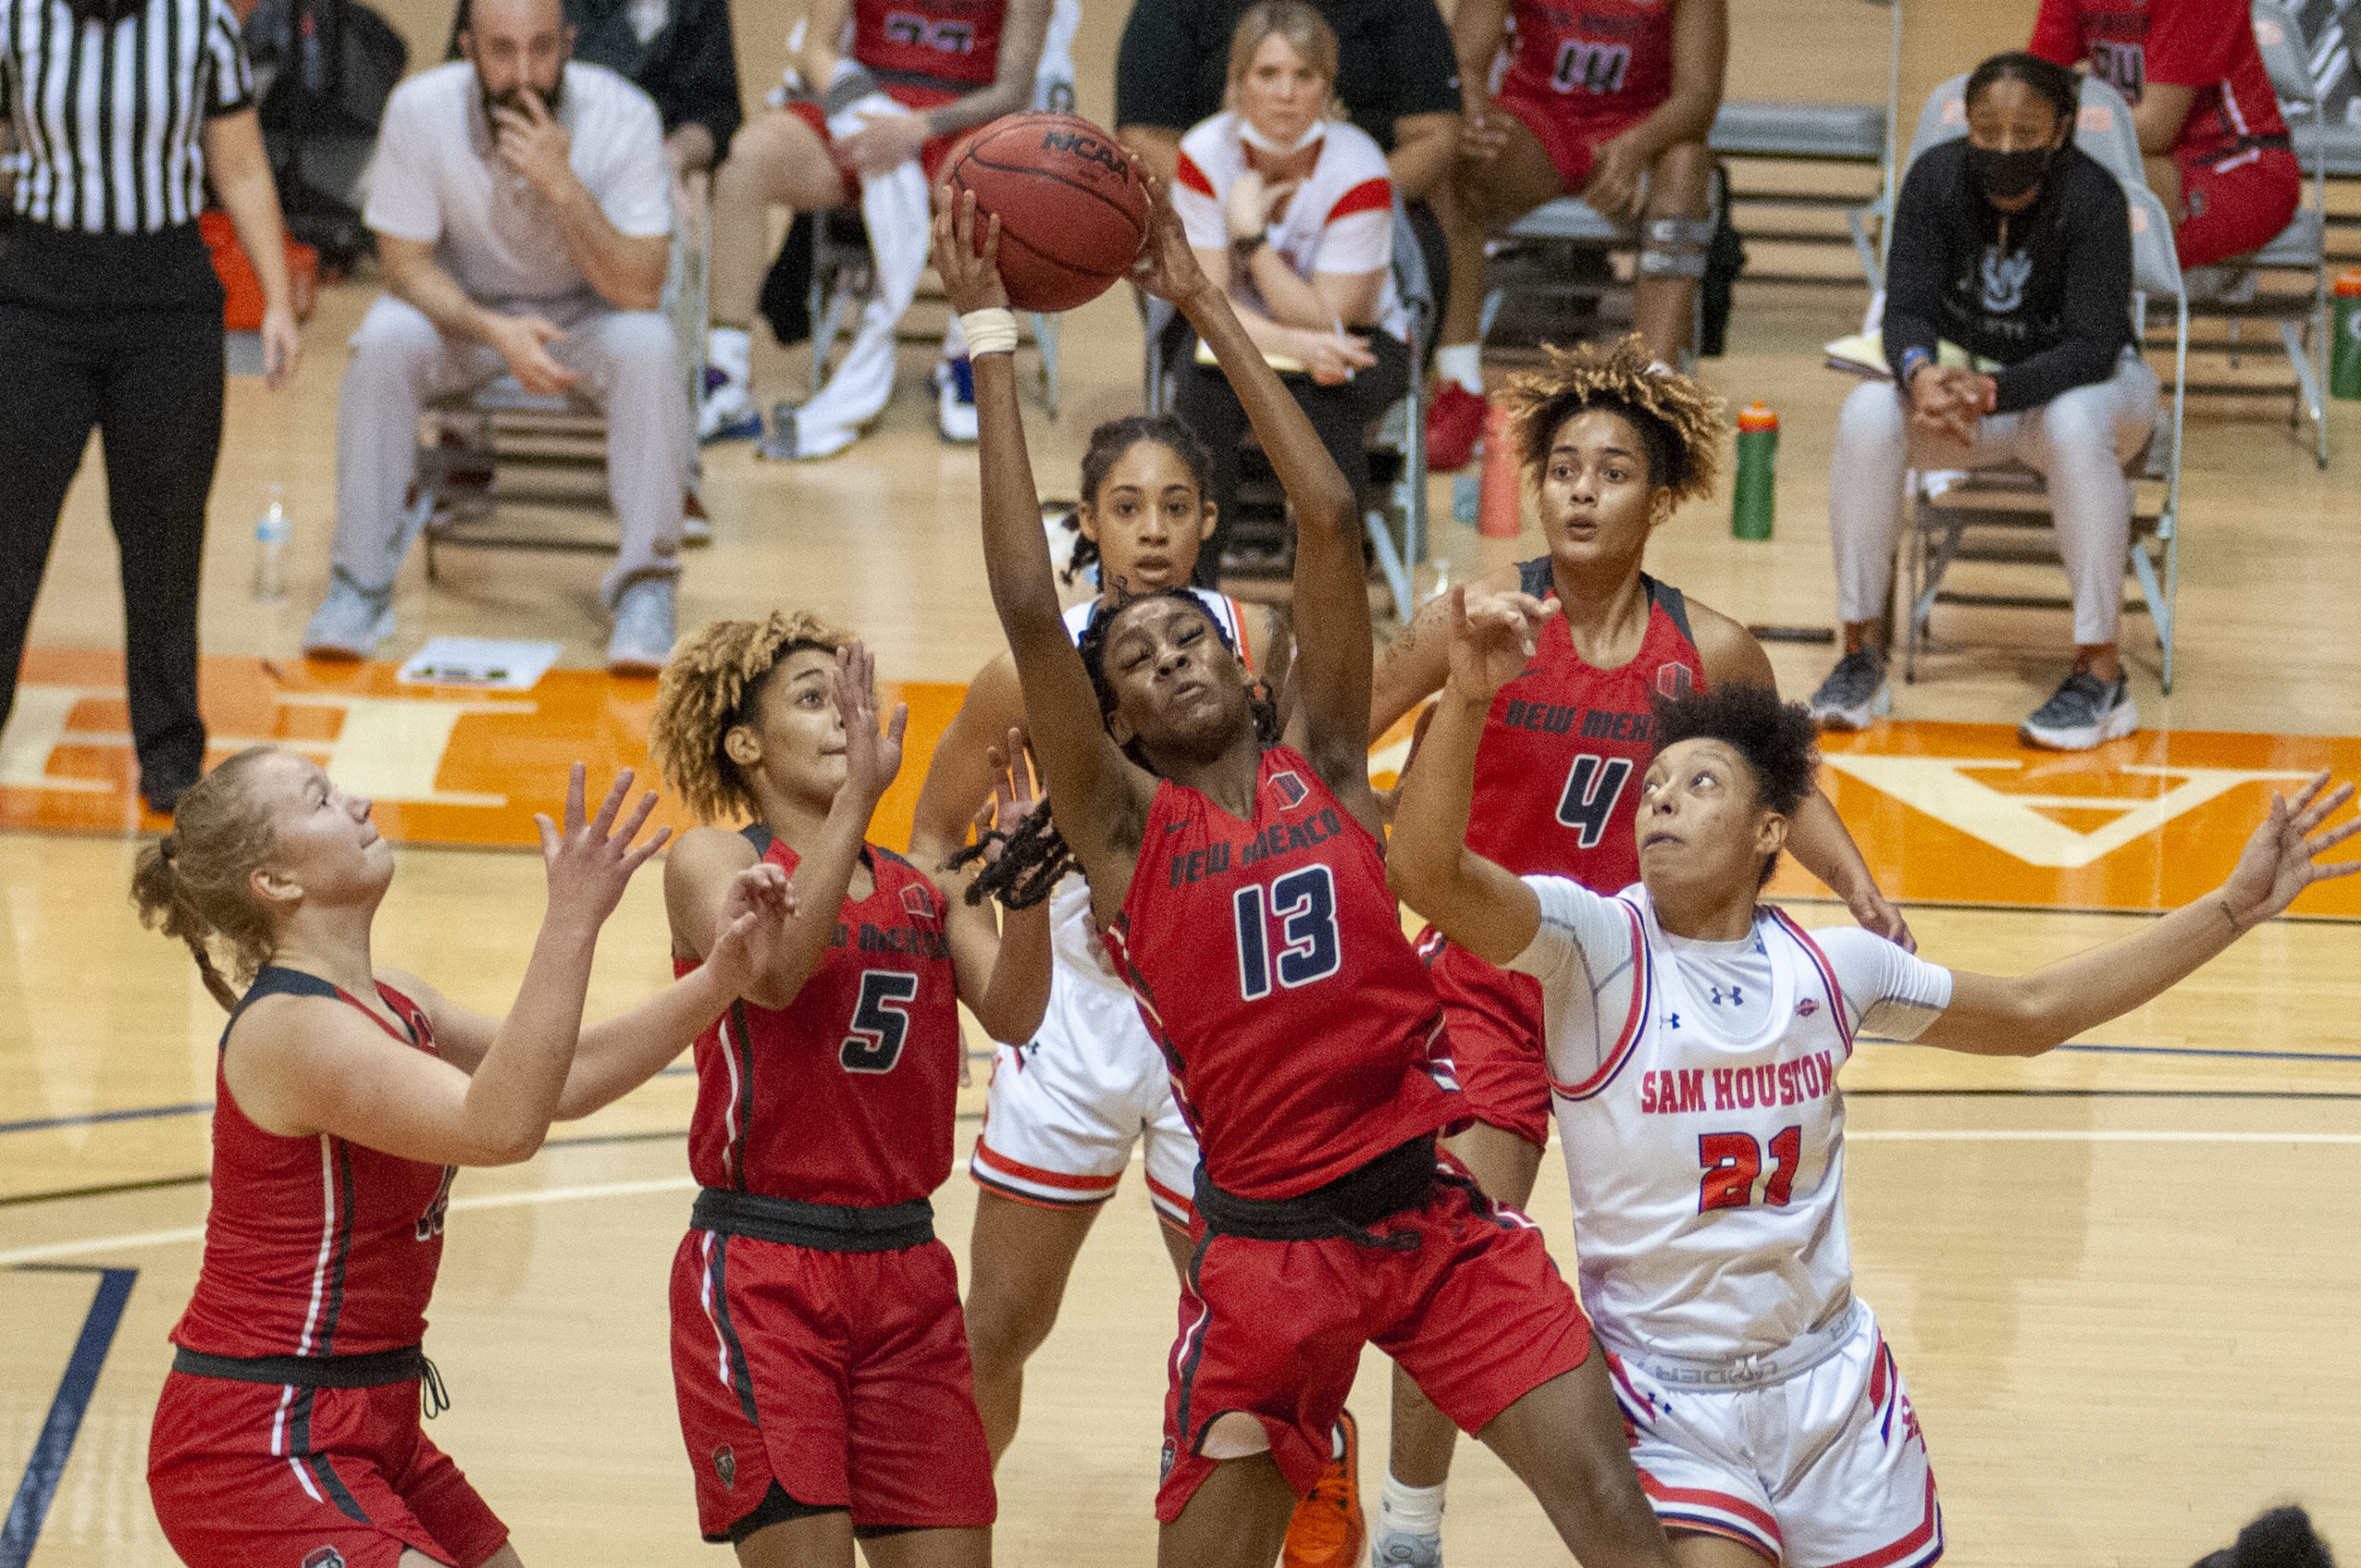 Lobos Overcome Poor 1st Quarter And Defeat Sam Houston State